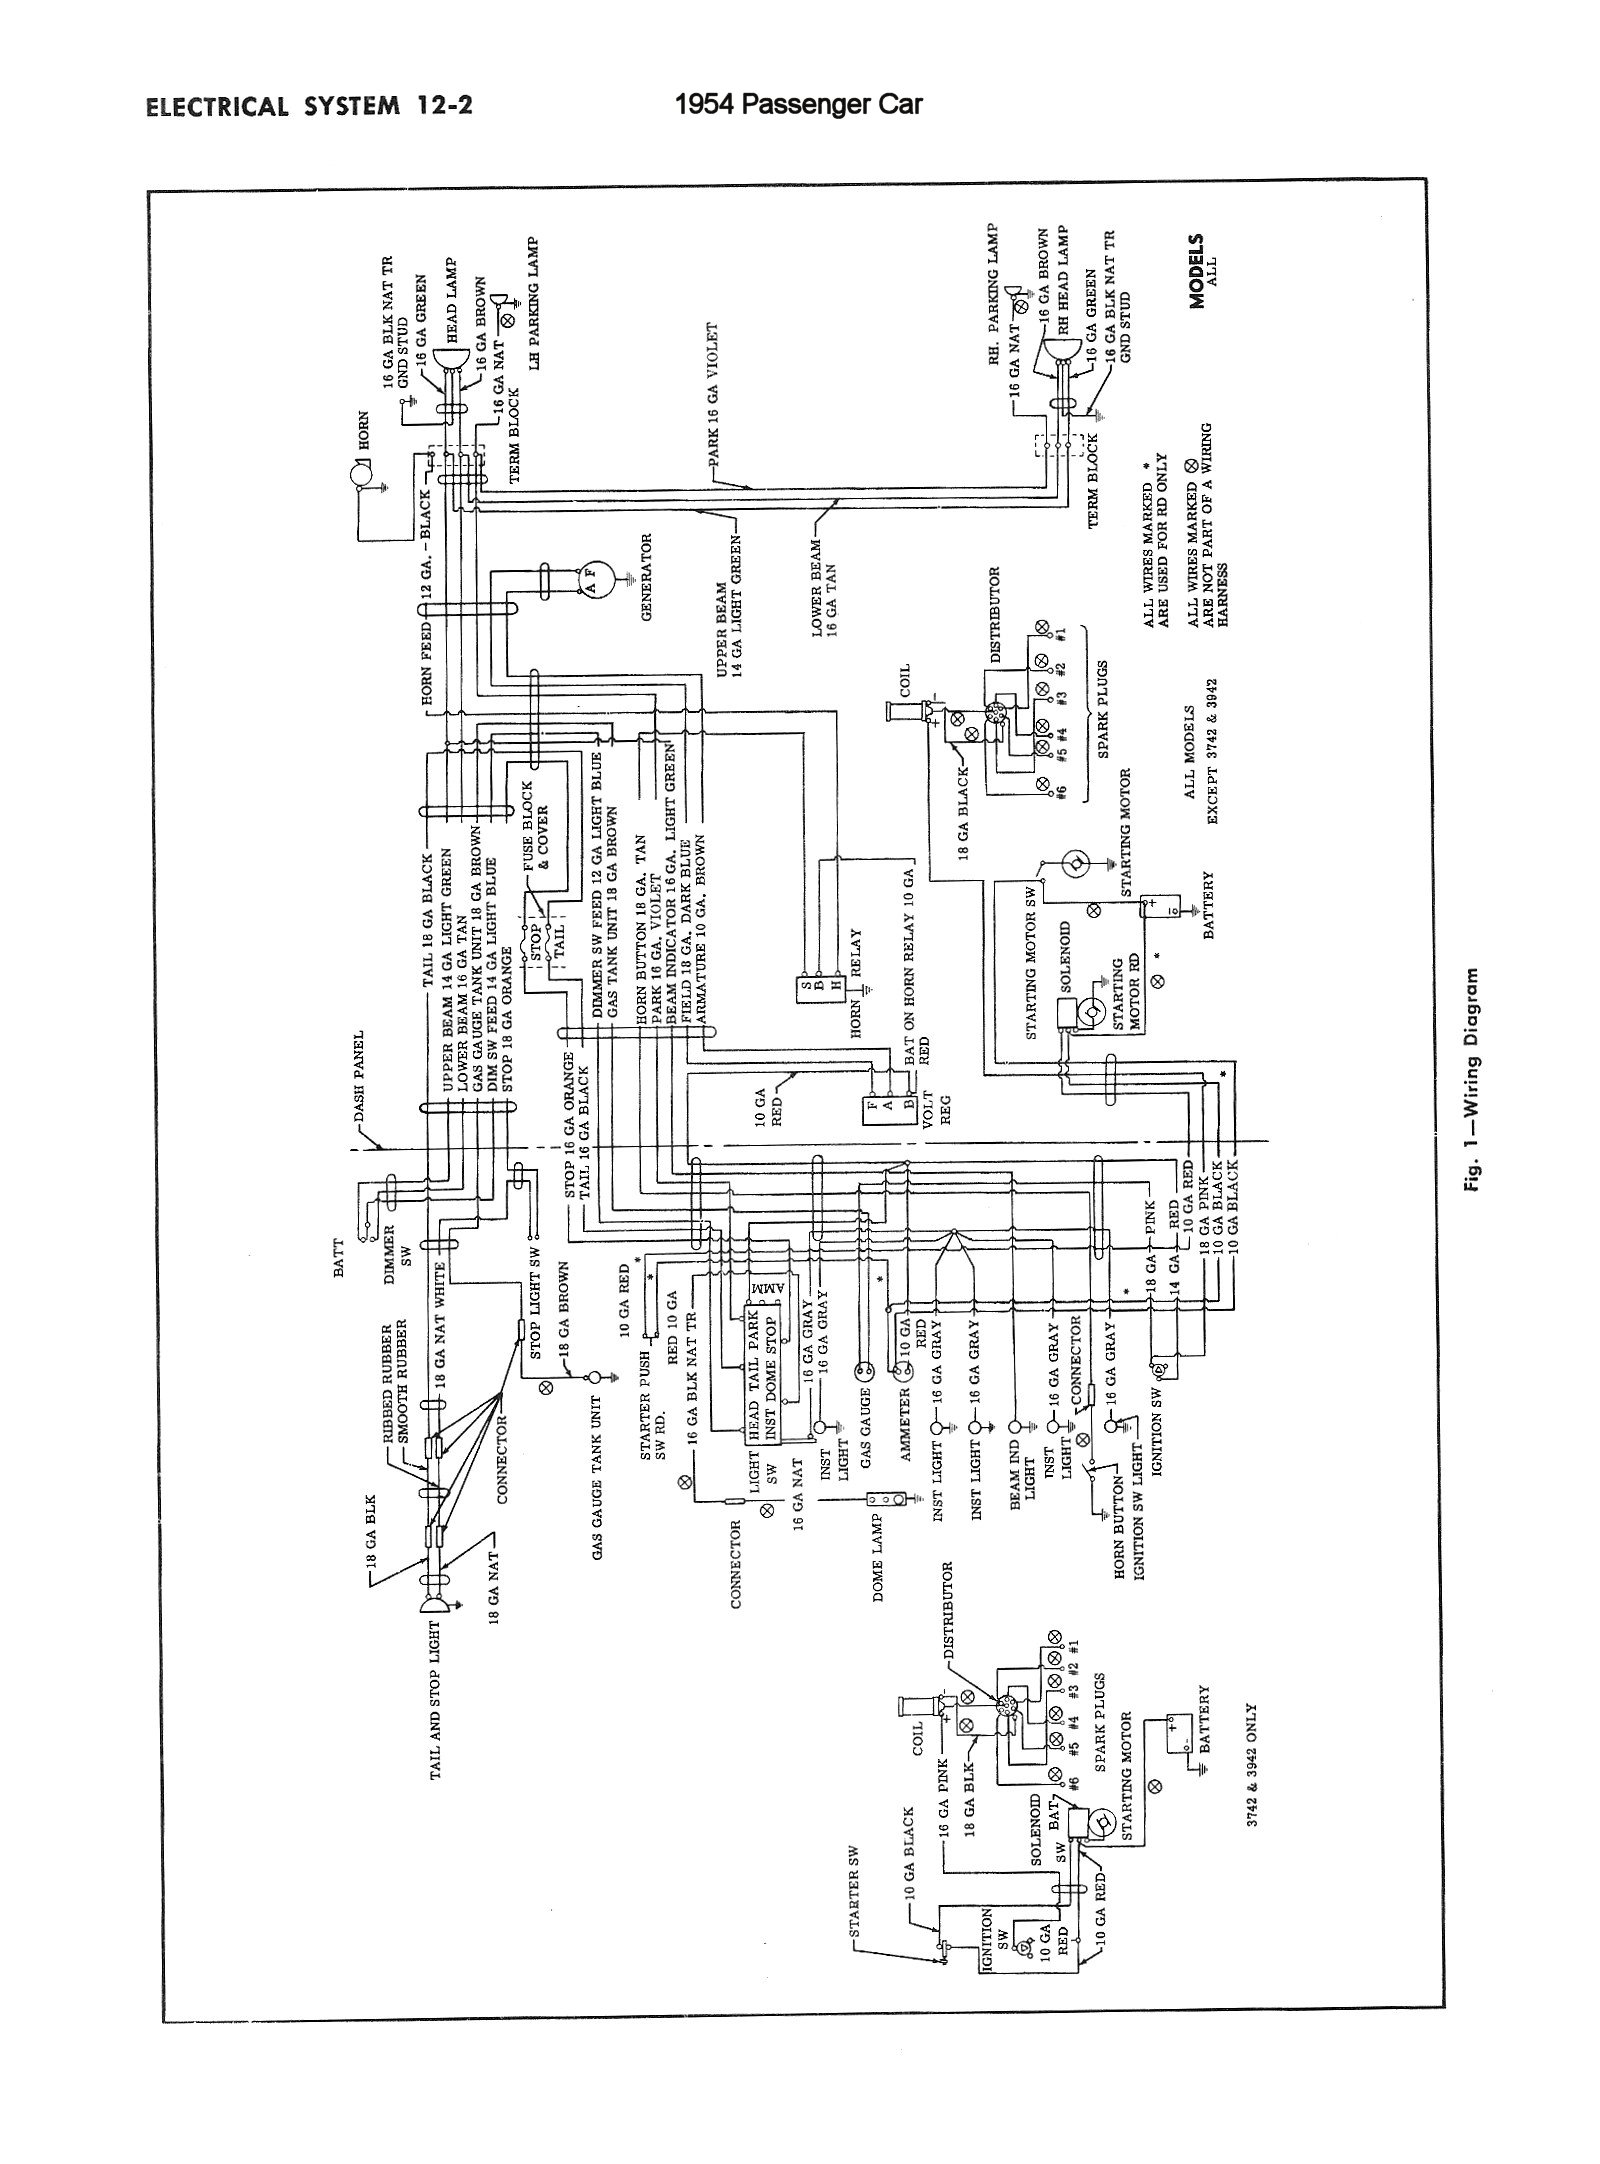 1955 chevy truck gauge cluster wiring diagram  1955  get free image about wiring diagram